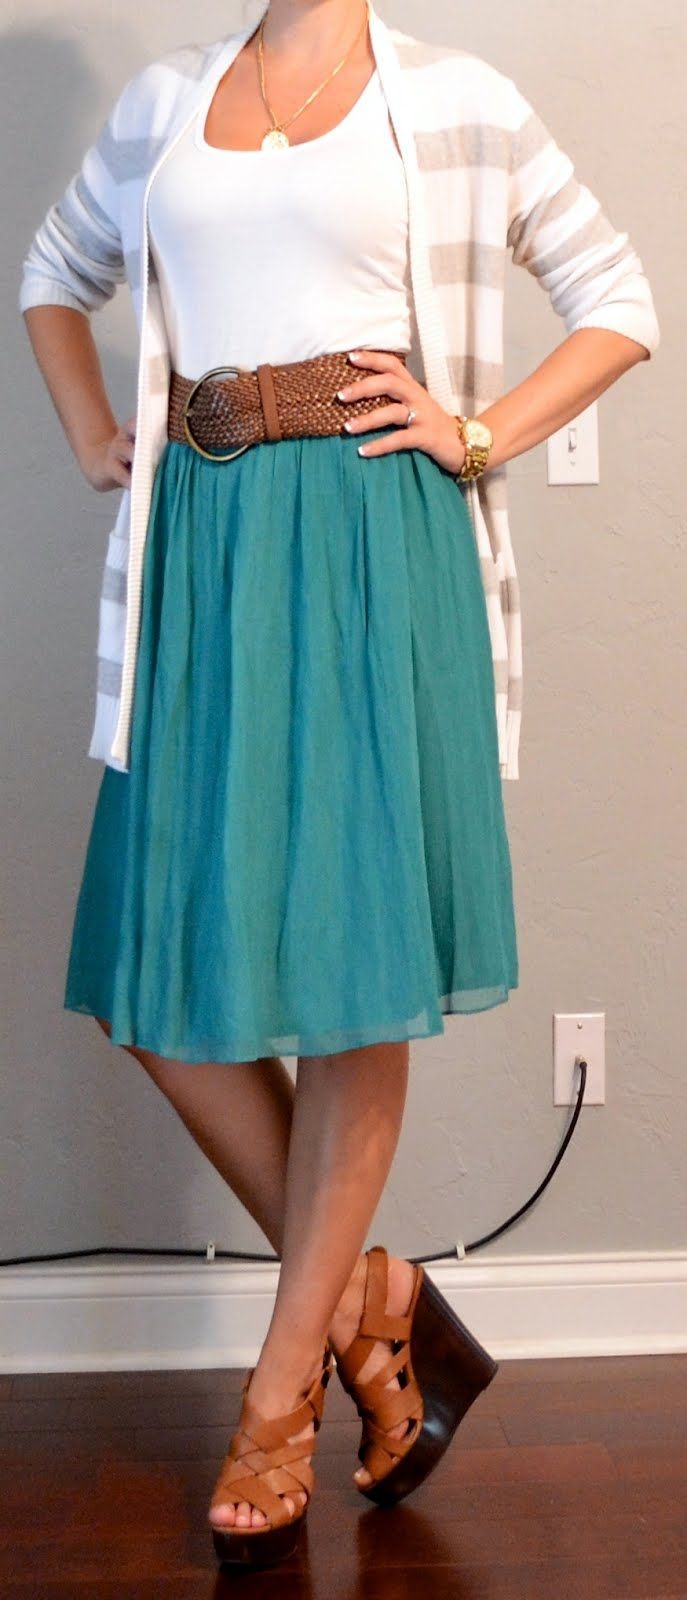 Buy Wear to what with dark teal skirt picture trends